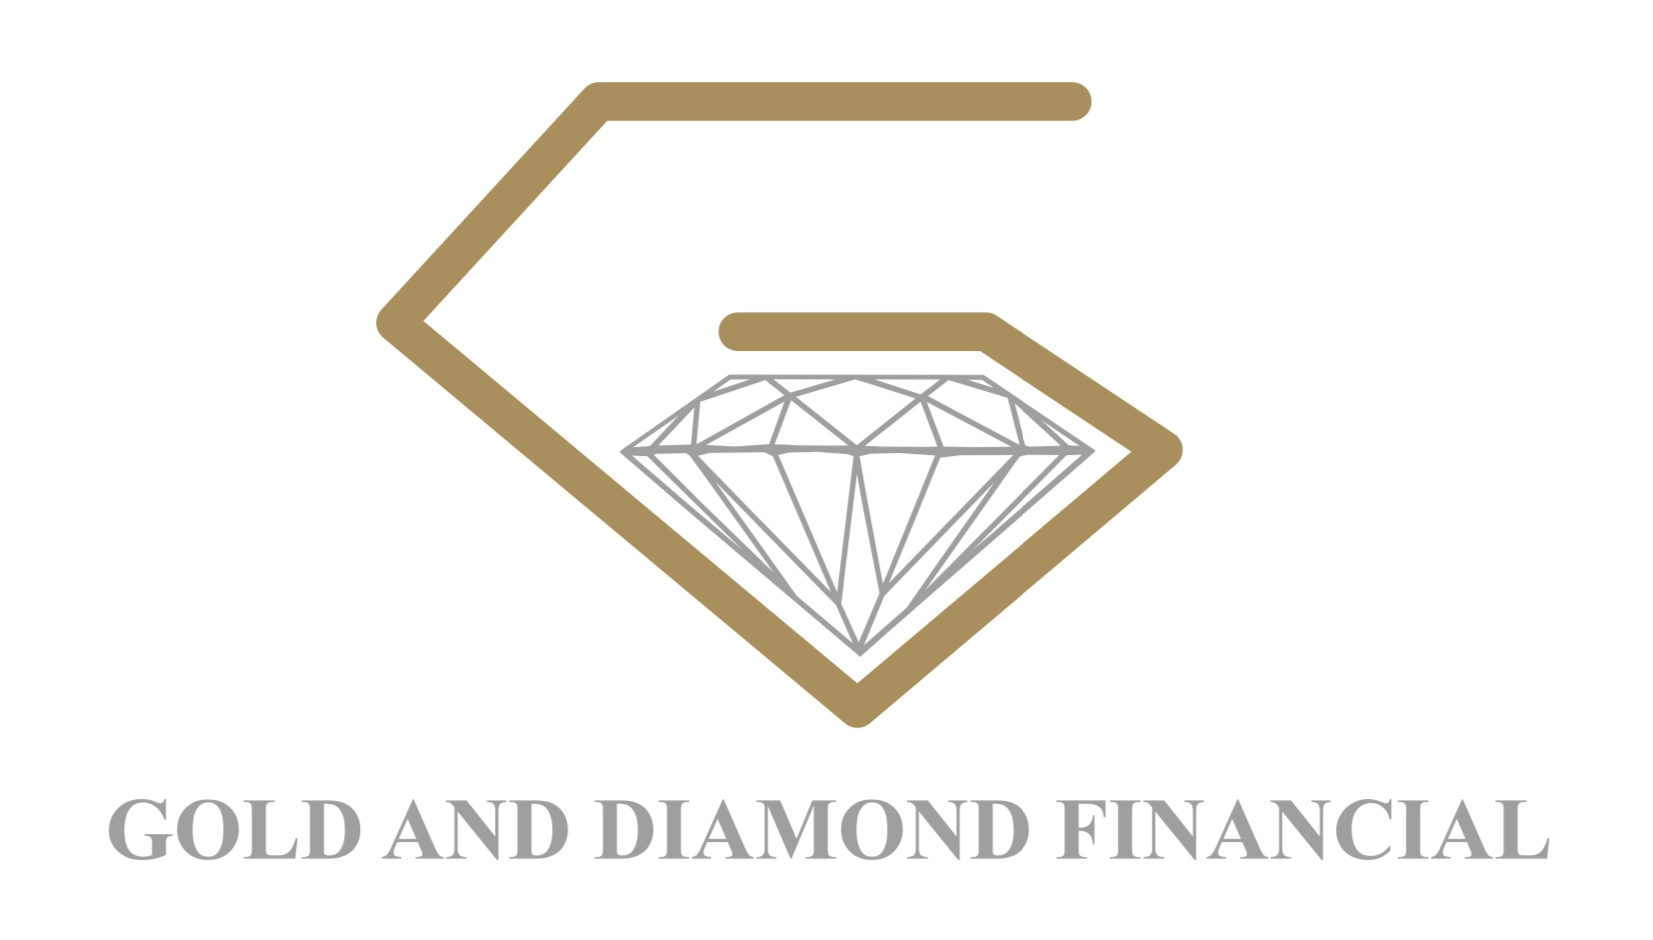 Gold and Diamond Financial